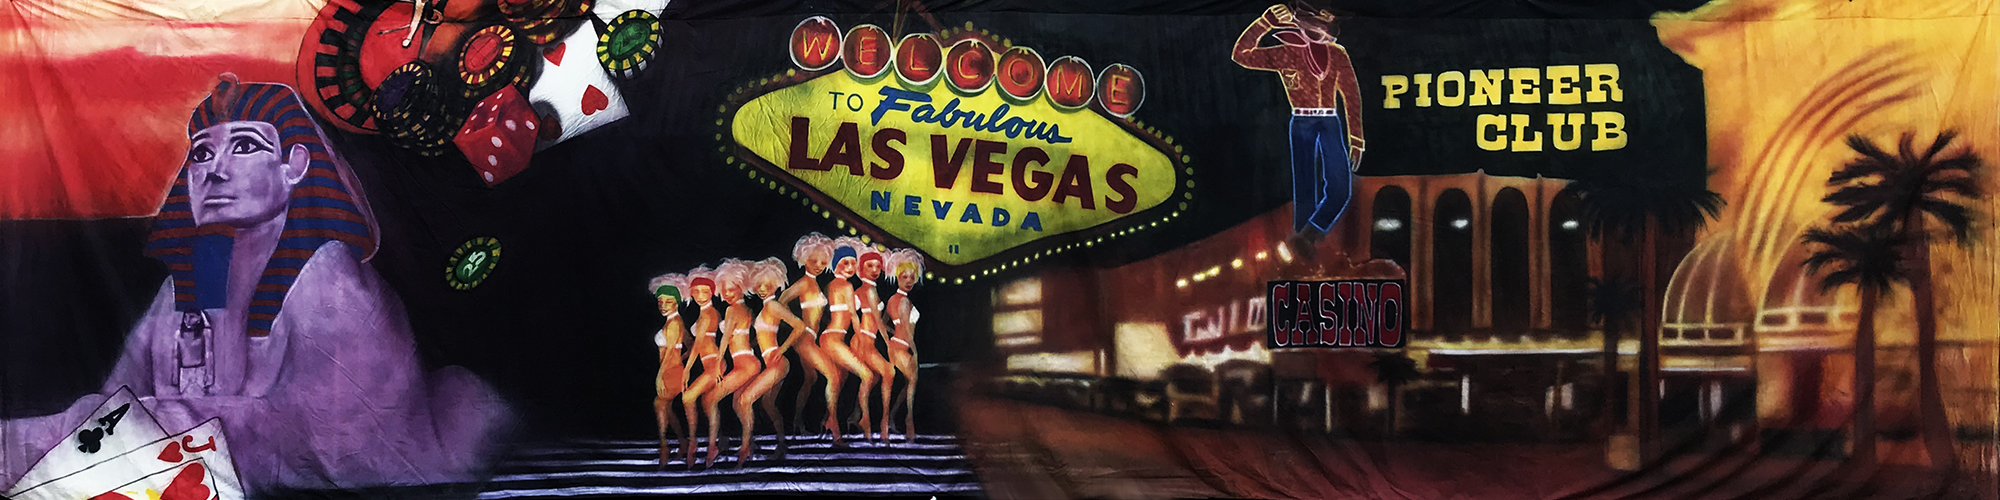 Vegas Backdrop 12m x 3m  Vegas sign and clubs  Treated with fire retardant 090719